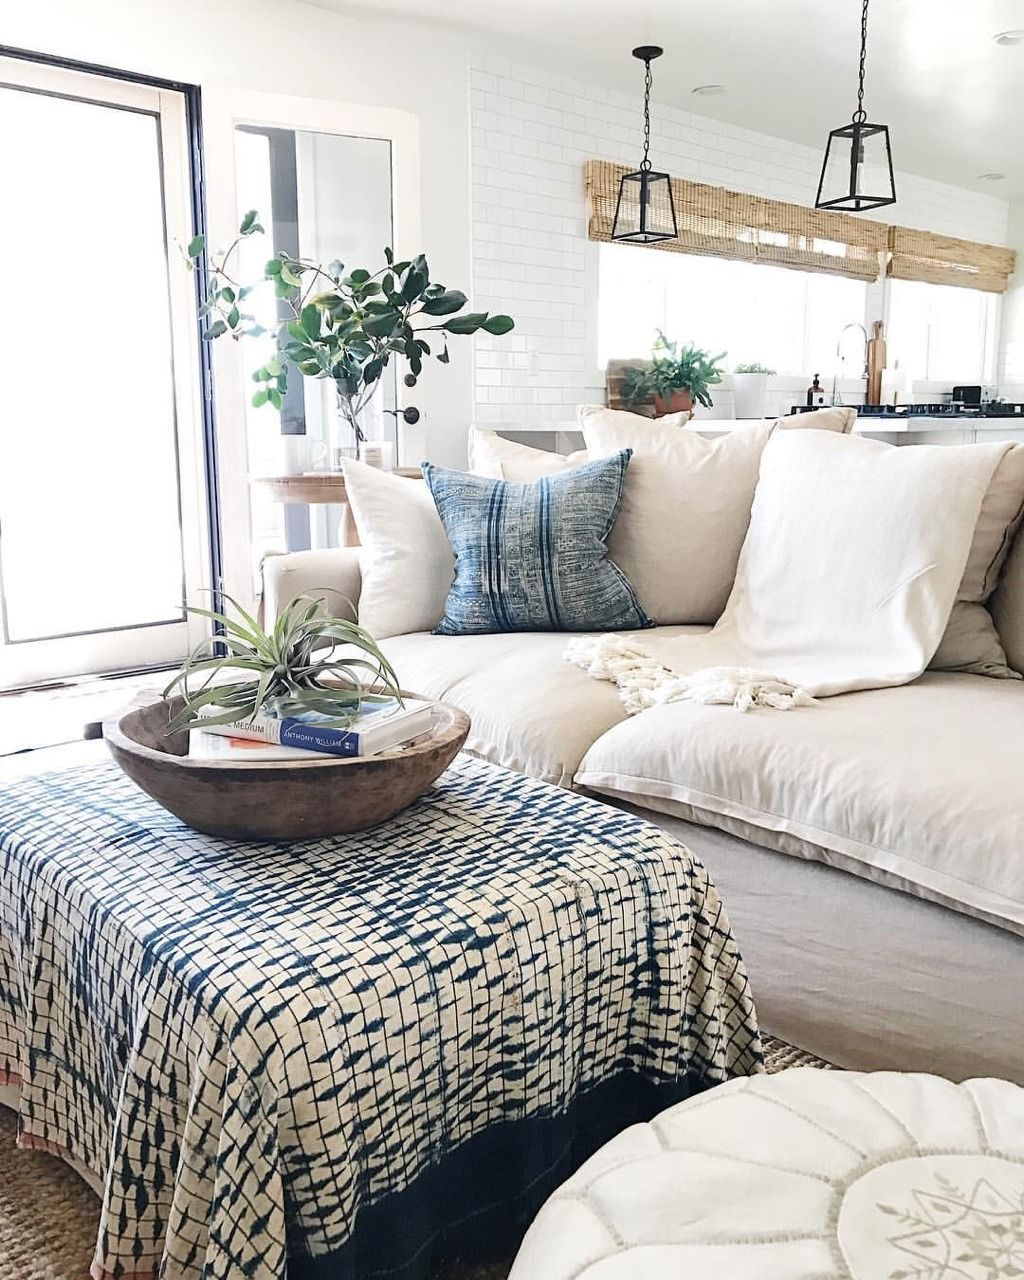 Michelle janeen living room plan diy decor condo also books in wood bowl instead of tray new design house rh pinterest